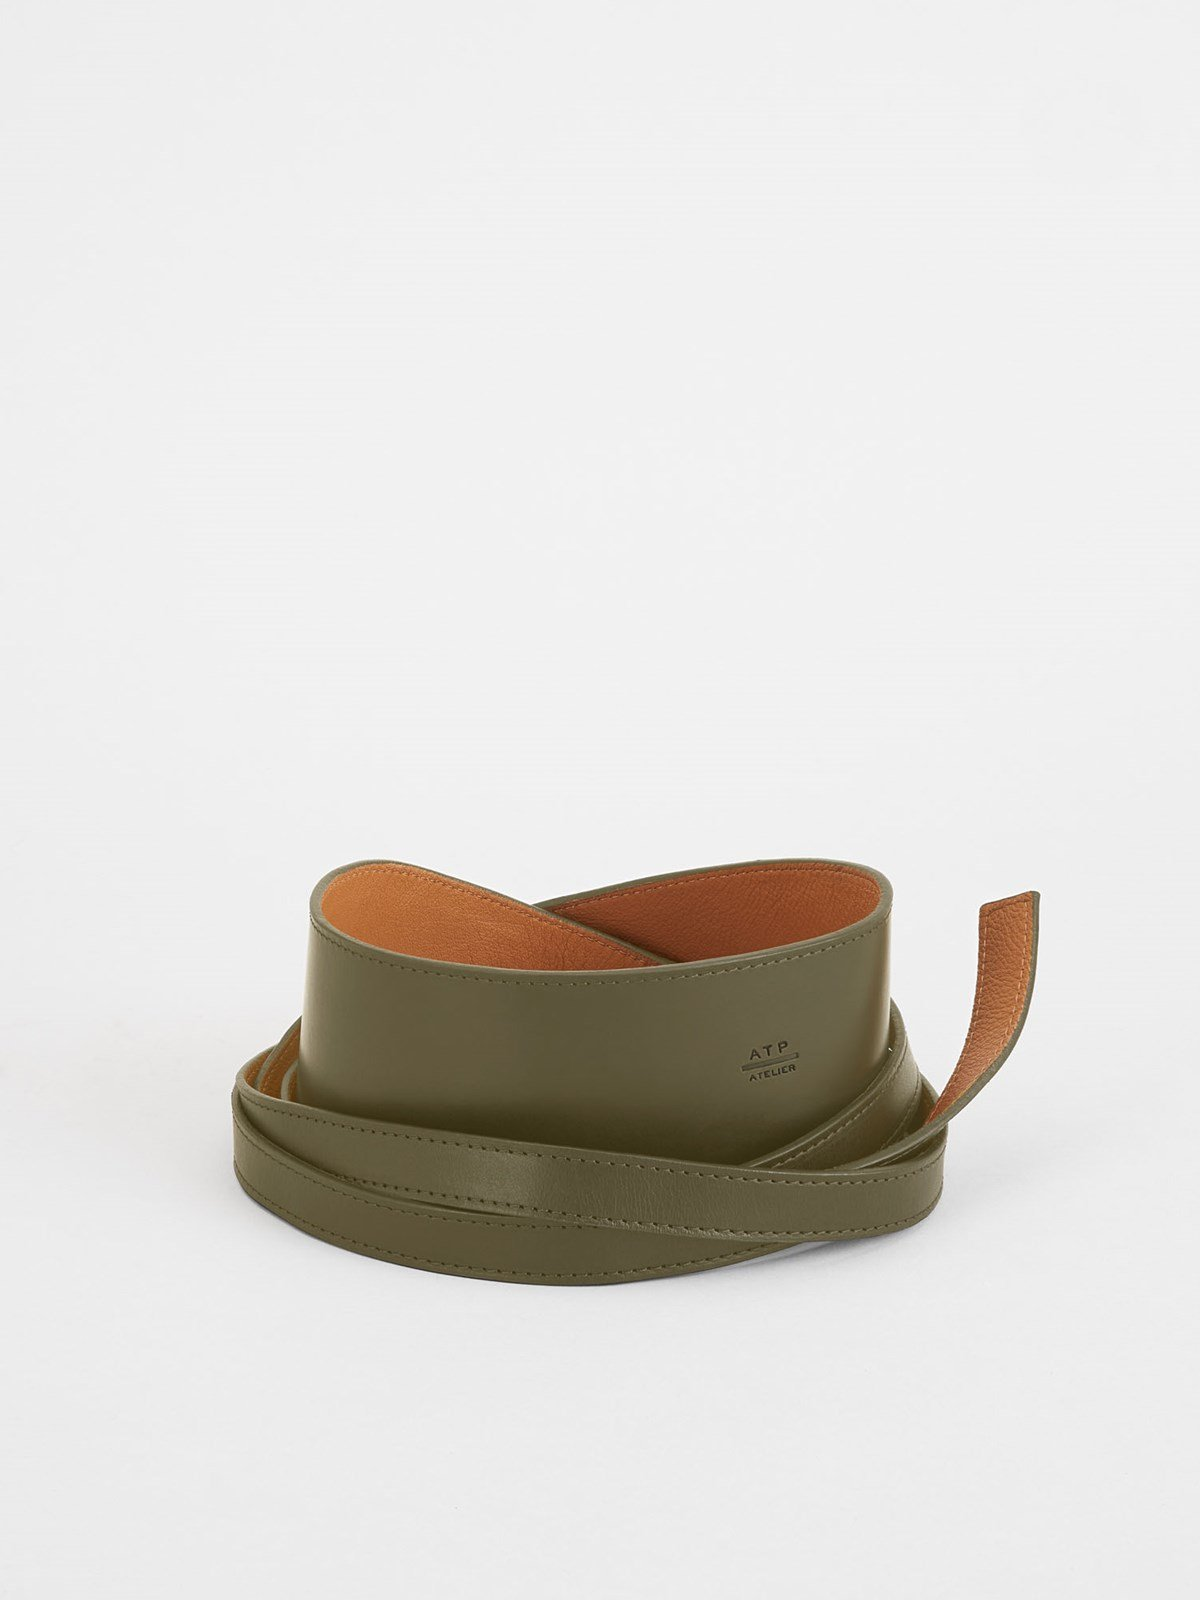 Biccari Turtle Belt